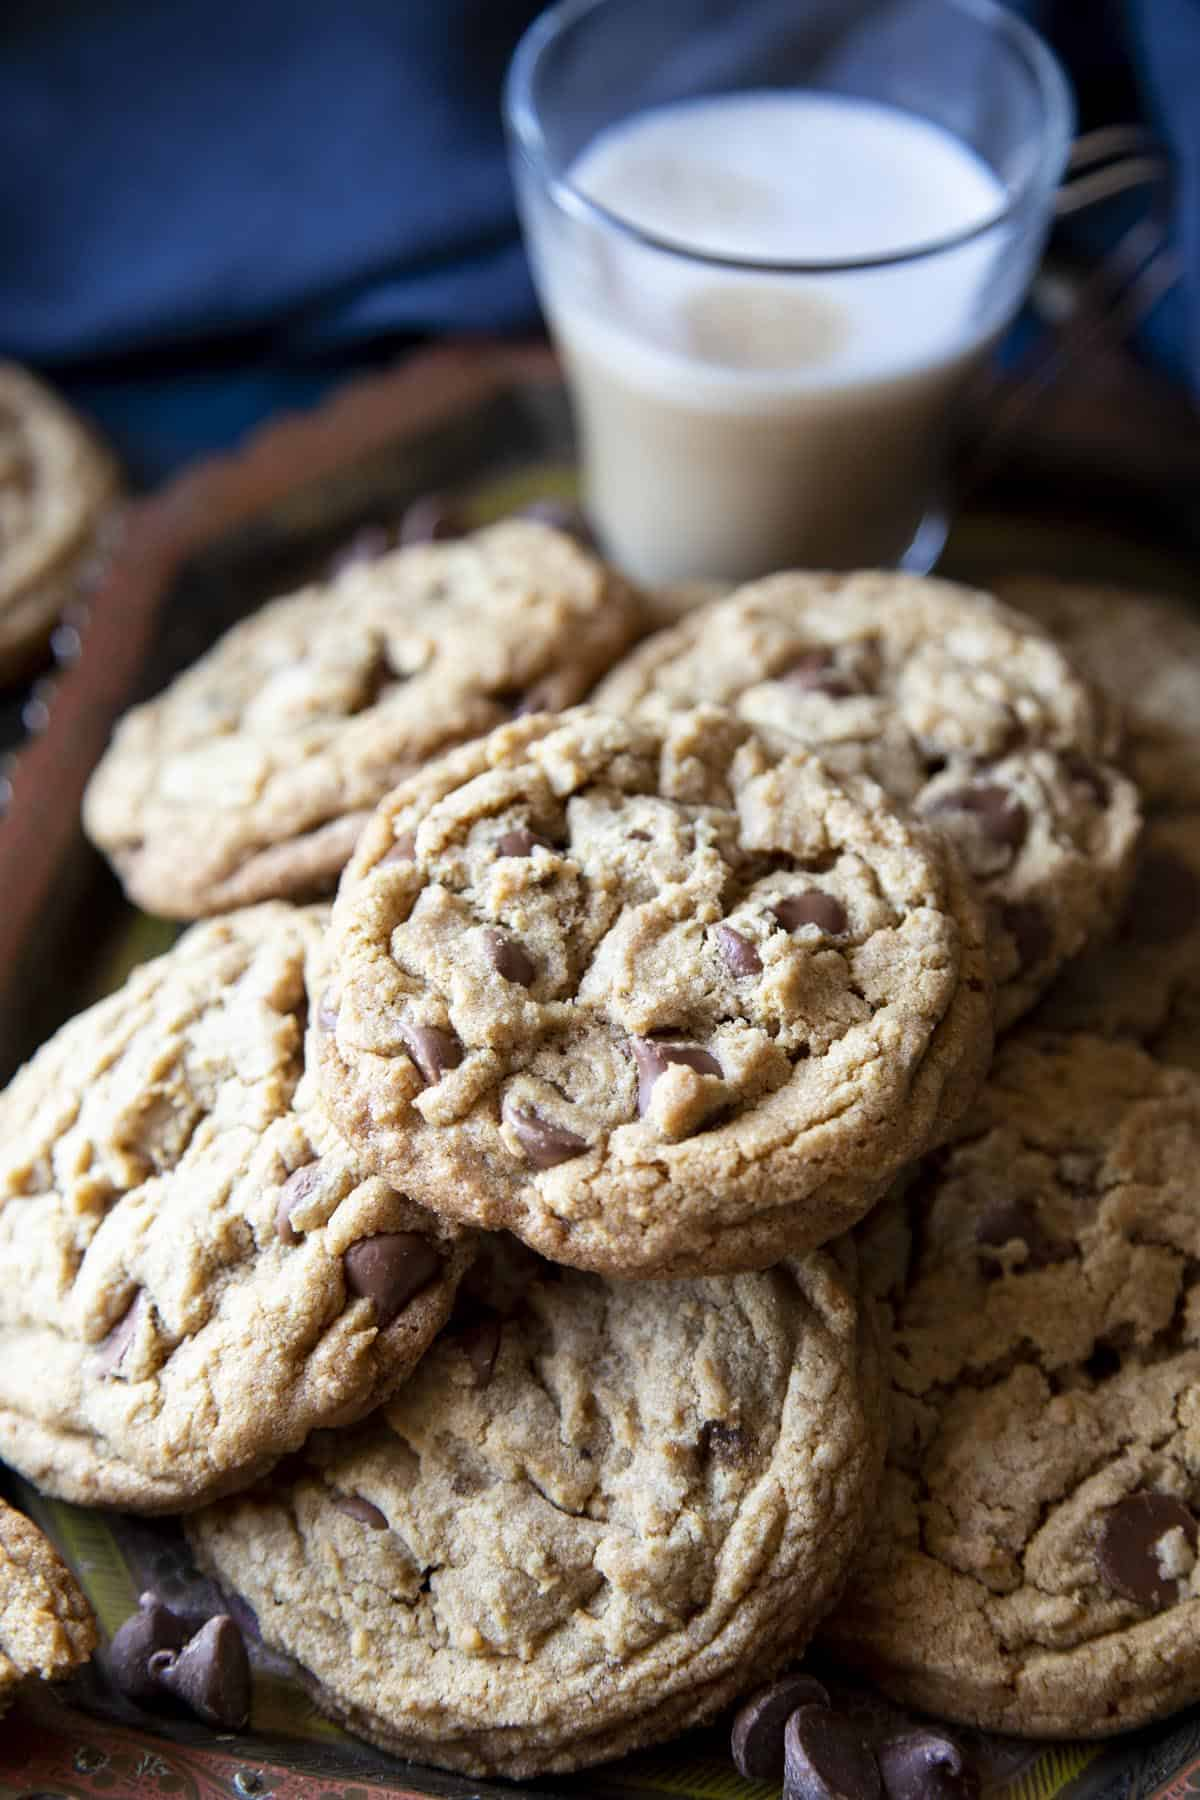 A tray of brown butter chocolate chip cookies with a glass of coffee.